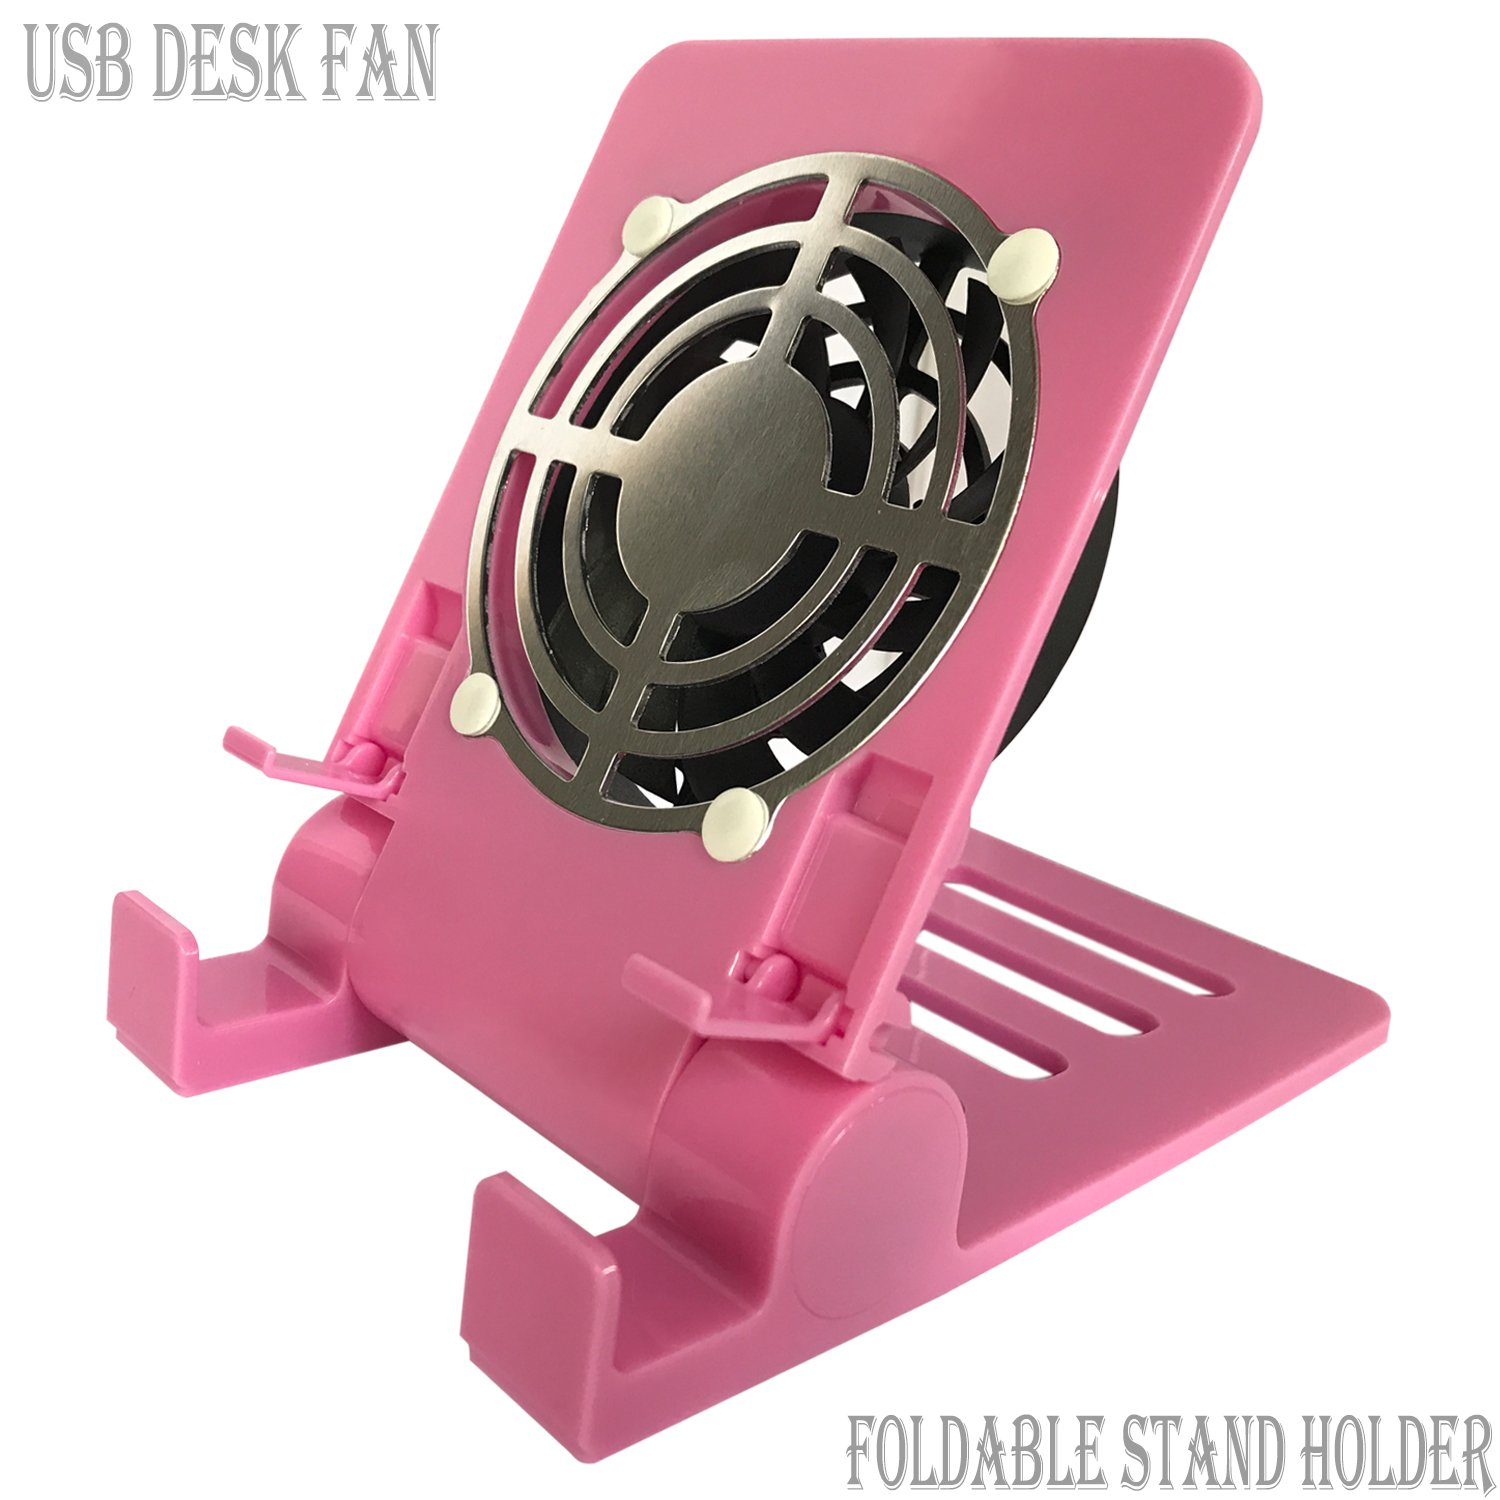 Desk USB Fan Air Circulator Fan USB Table Desk Portable Fan,Small Personal USB Fan Smartphones Stand Holder Cell Phone Stand Holder Cooling Cooler Fan Cooling Pad Radiator Foldable Stand Holder(Pink)